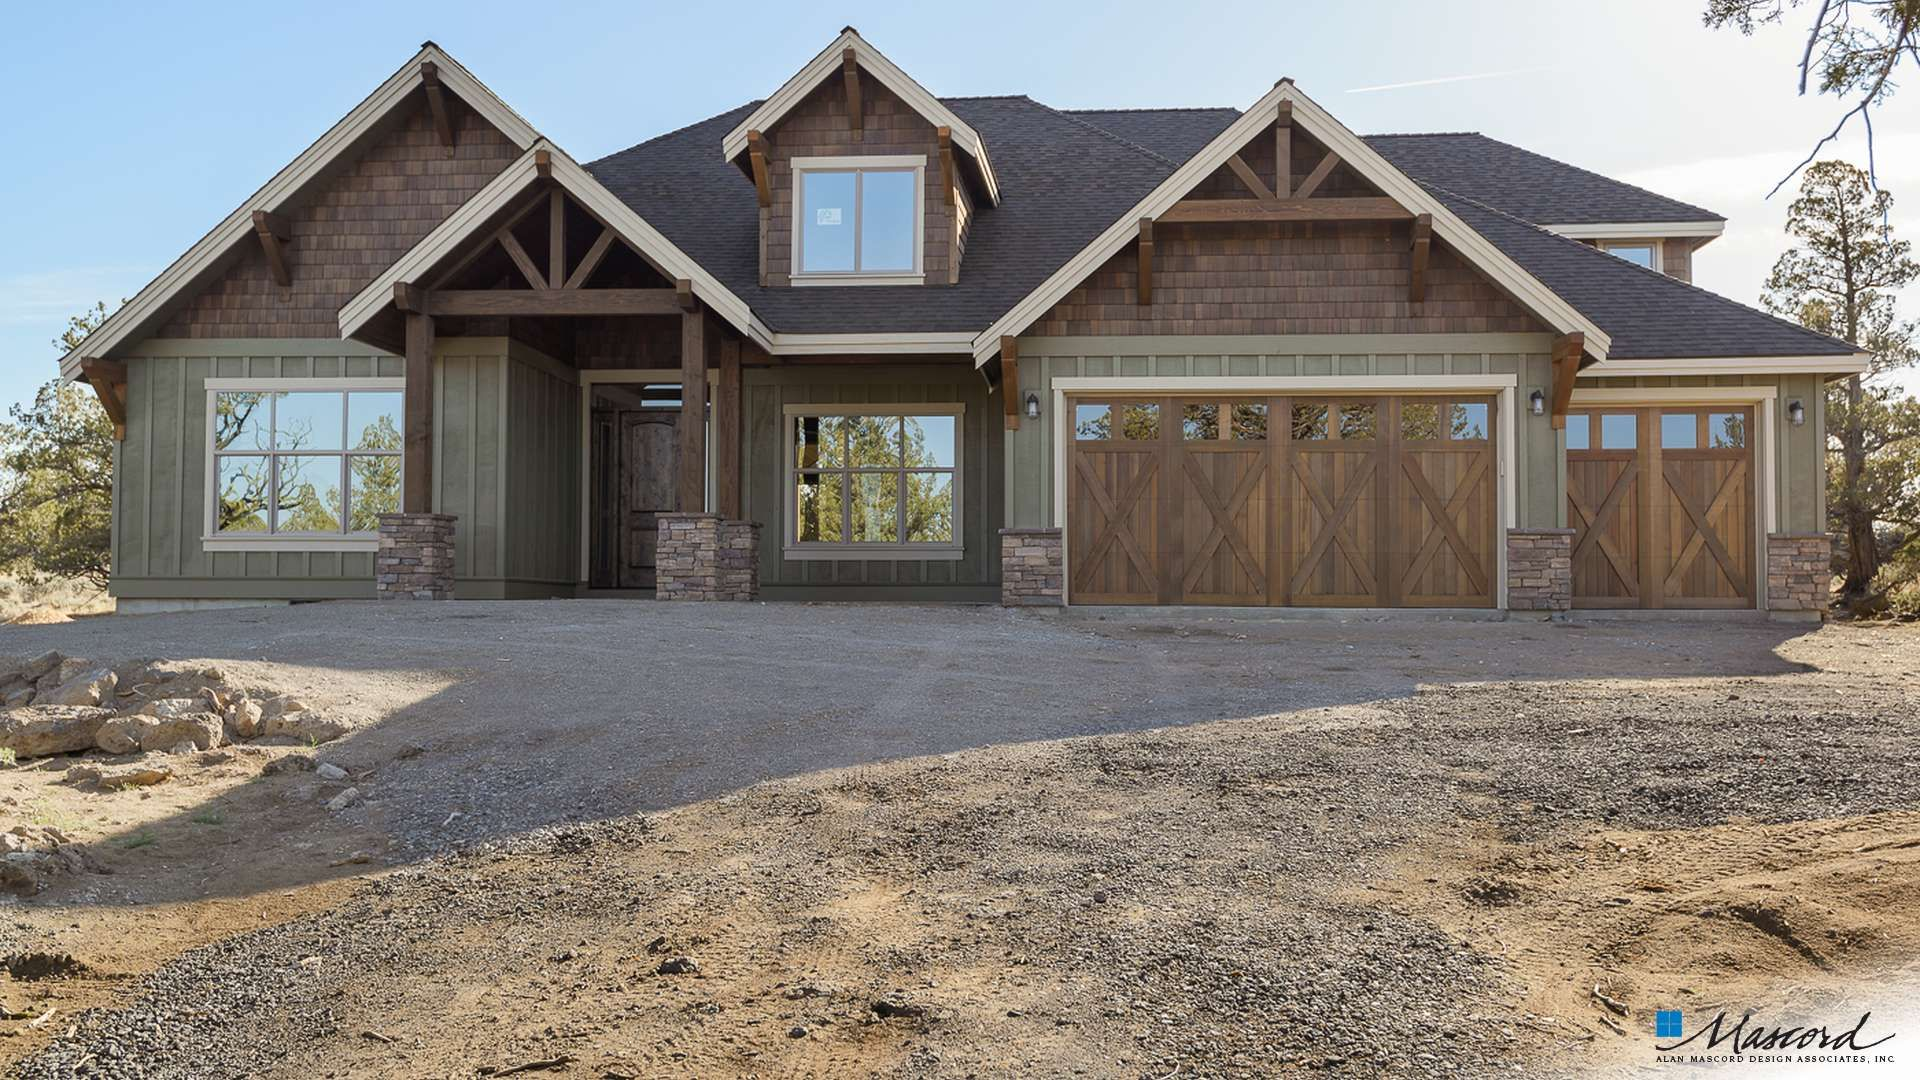 Photo of Craftsman House Plan 23111 The Edgefield: 3340 Sqft, 4 Beds, 4 Baths